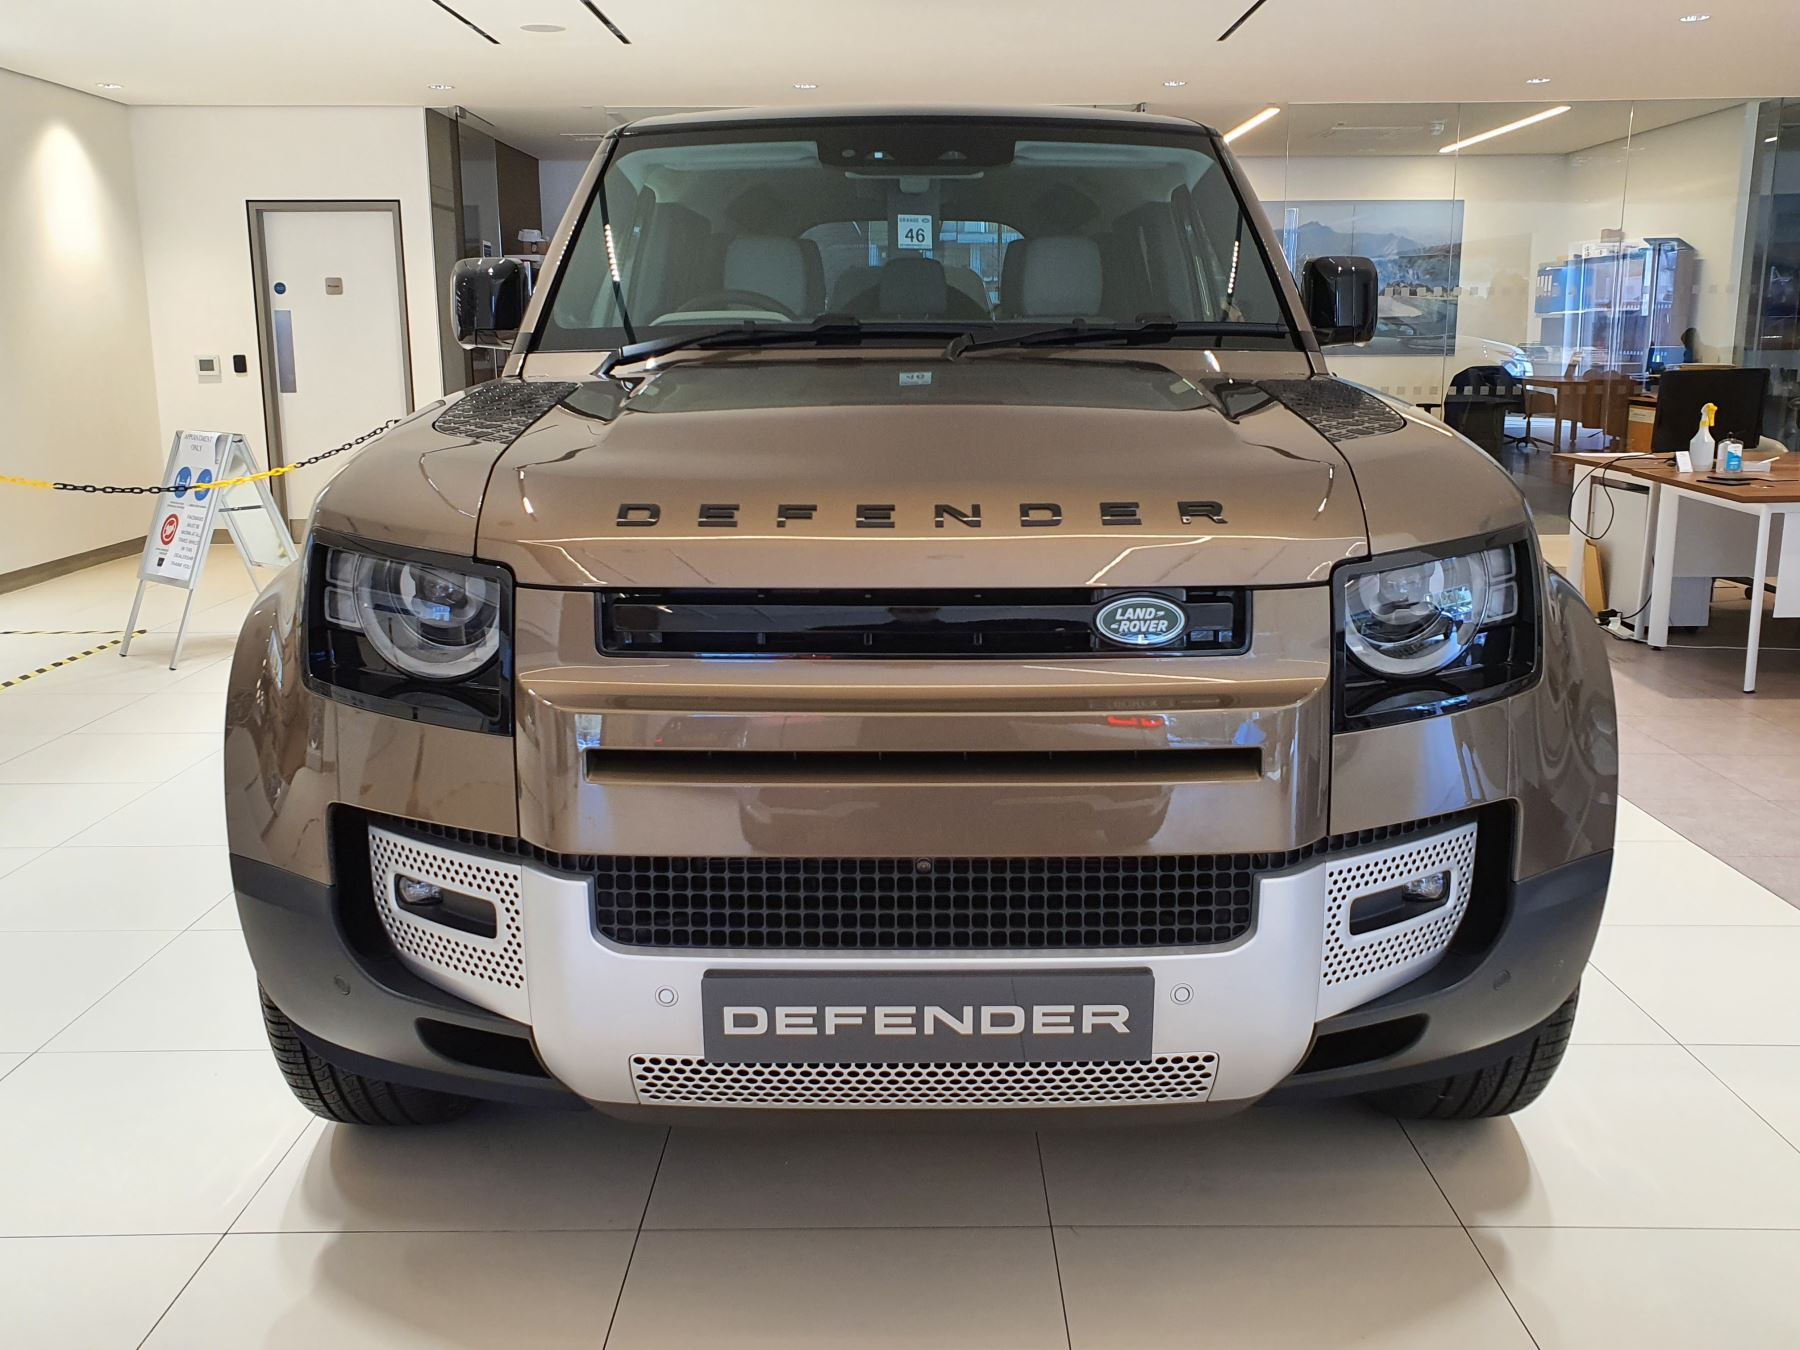 Land Rover Defender 2.0 D240 First Edition 110 SPECIAL EDITIONS image 6